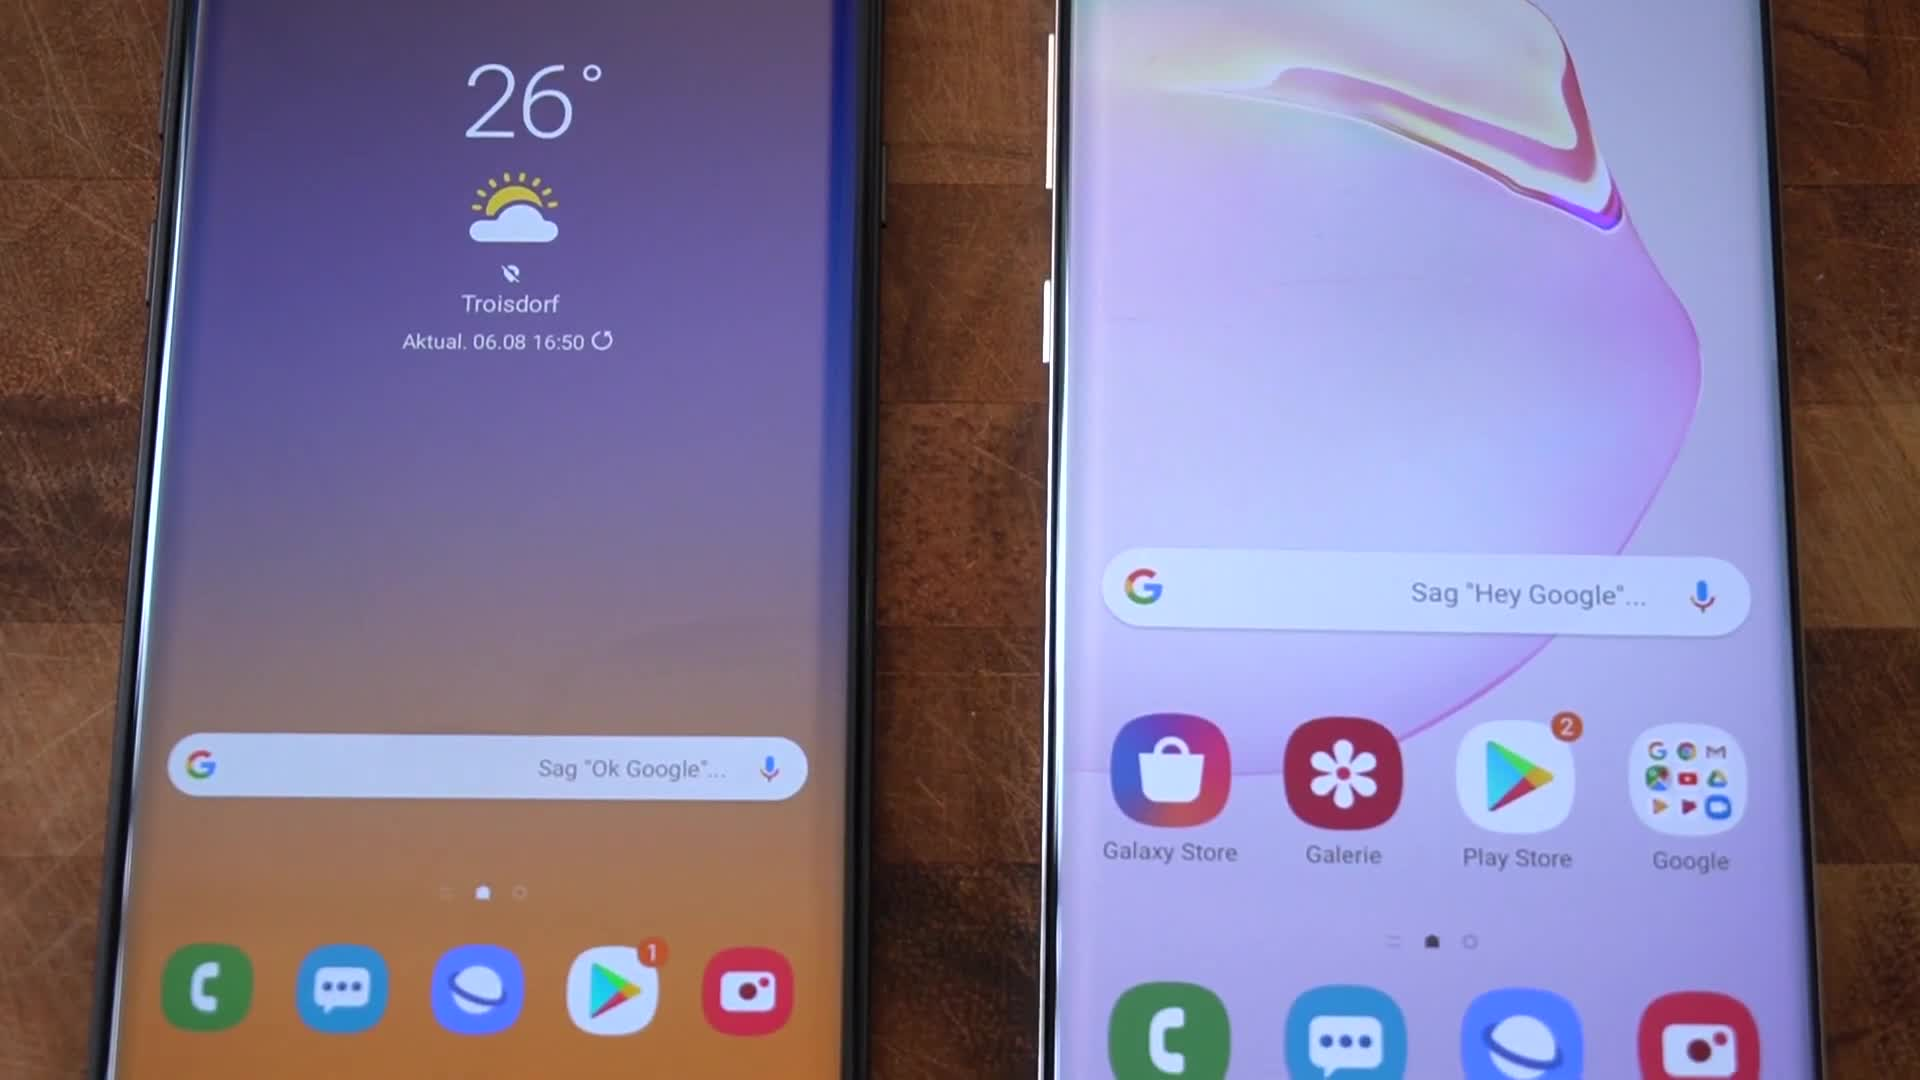 Android, Samsung, Hands-On, Samsung Mobile, NewGadgets, Johannes Knapp, Samsung Galaxy Note 10, Galaxy Note 10, Samsung Galaxy Note 10 Plus, Samsung Galaxy Note 10+